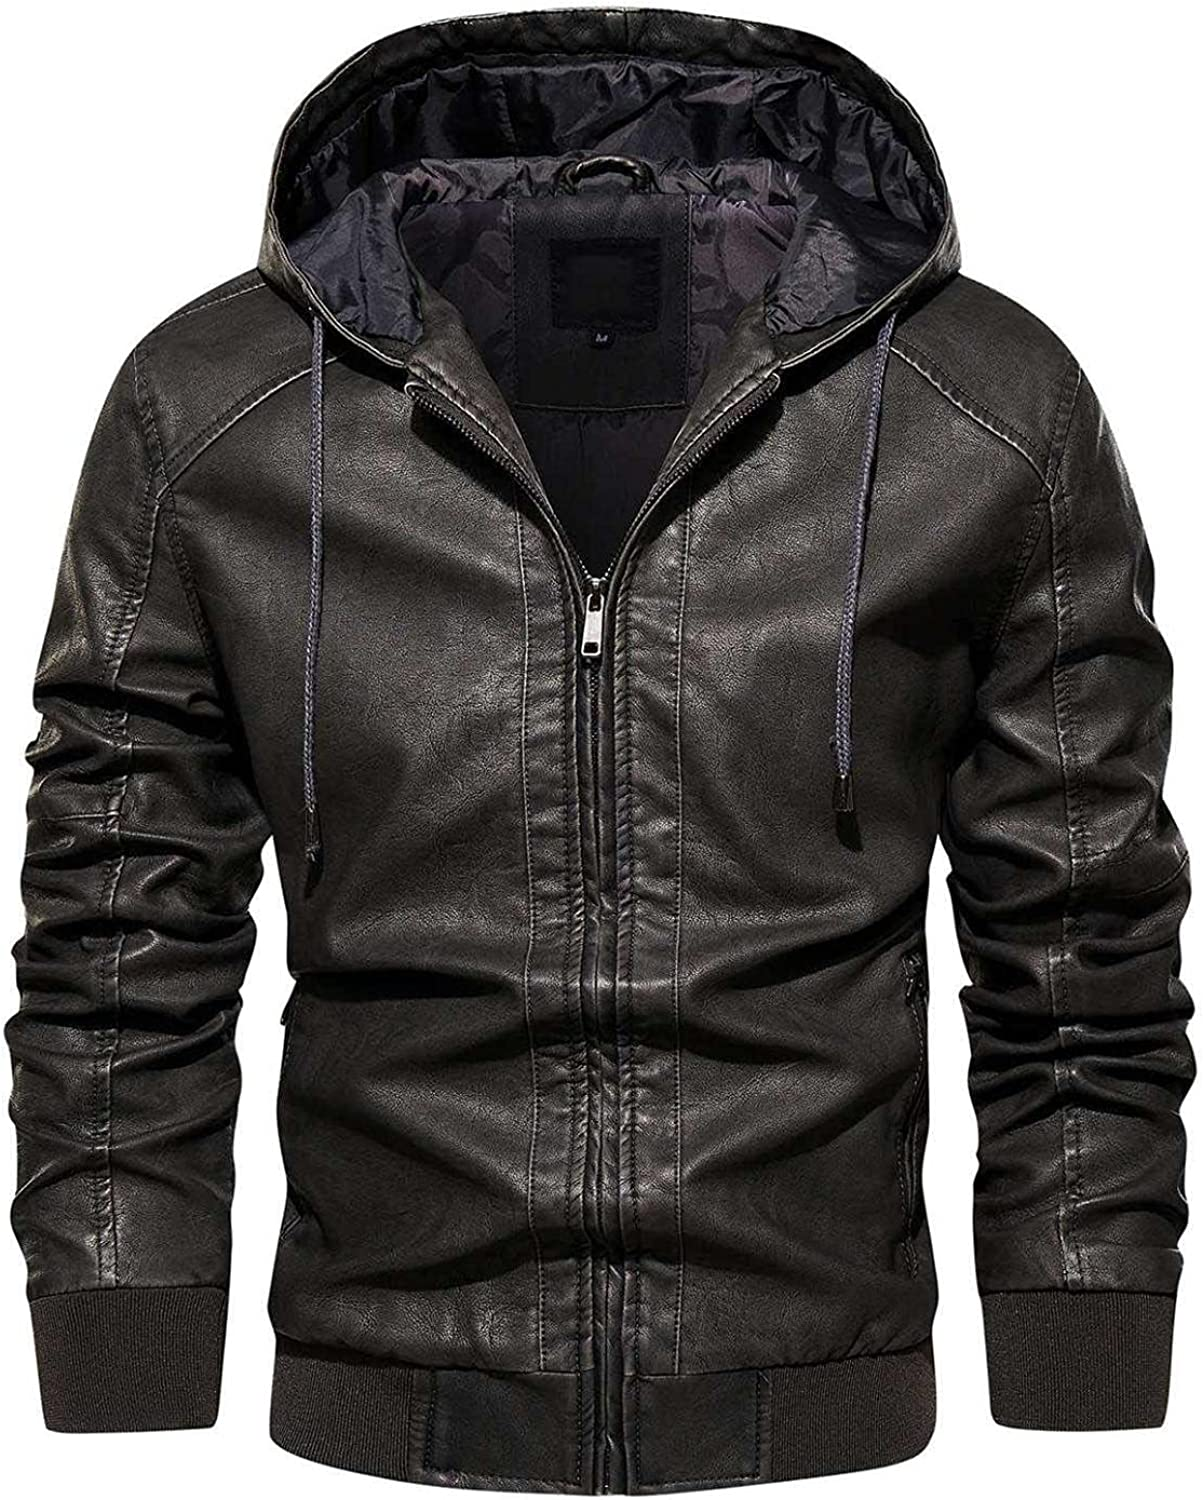 Faux Leather Jackets for Men Solid Full Zipper Hooded Overcoat Vintage Motorcycle Bomber Jacket Warm Winter Coats